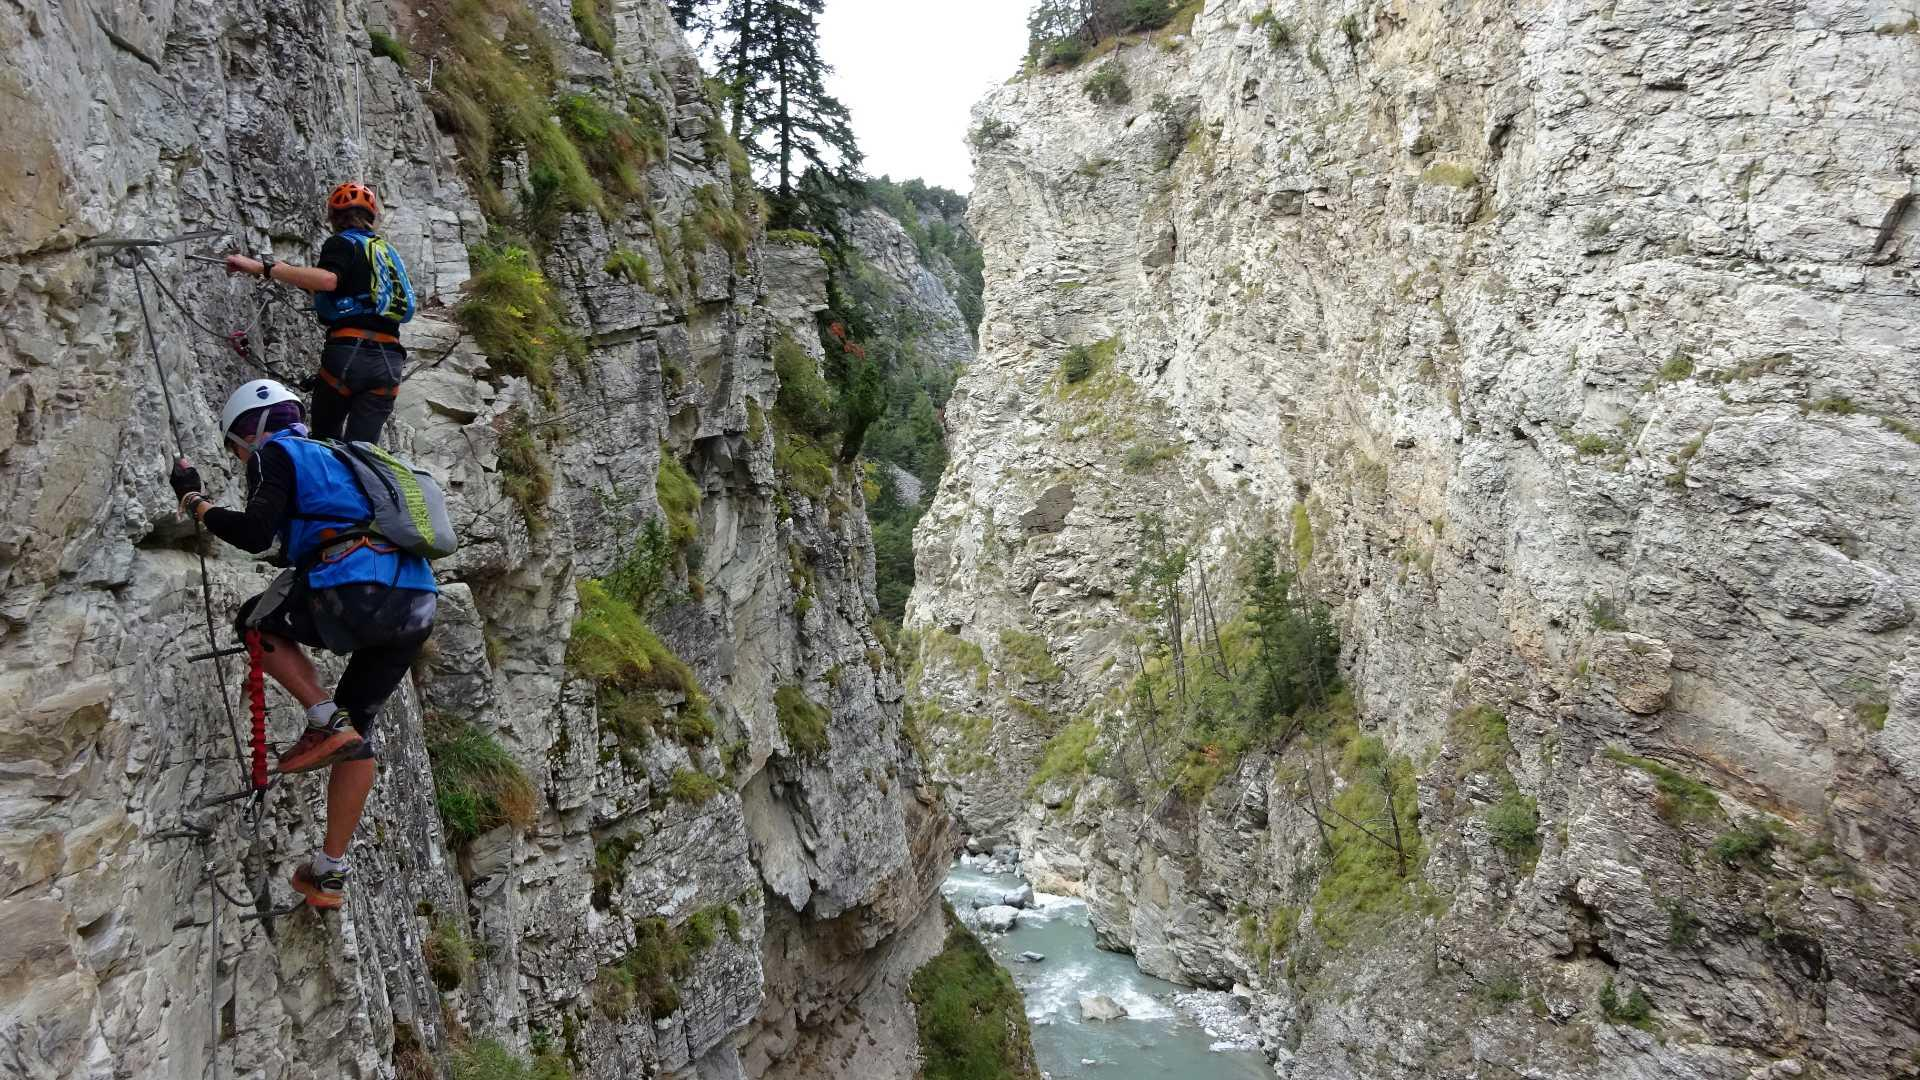 Via ferrata du diable 16 9